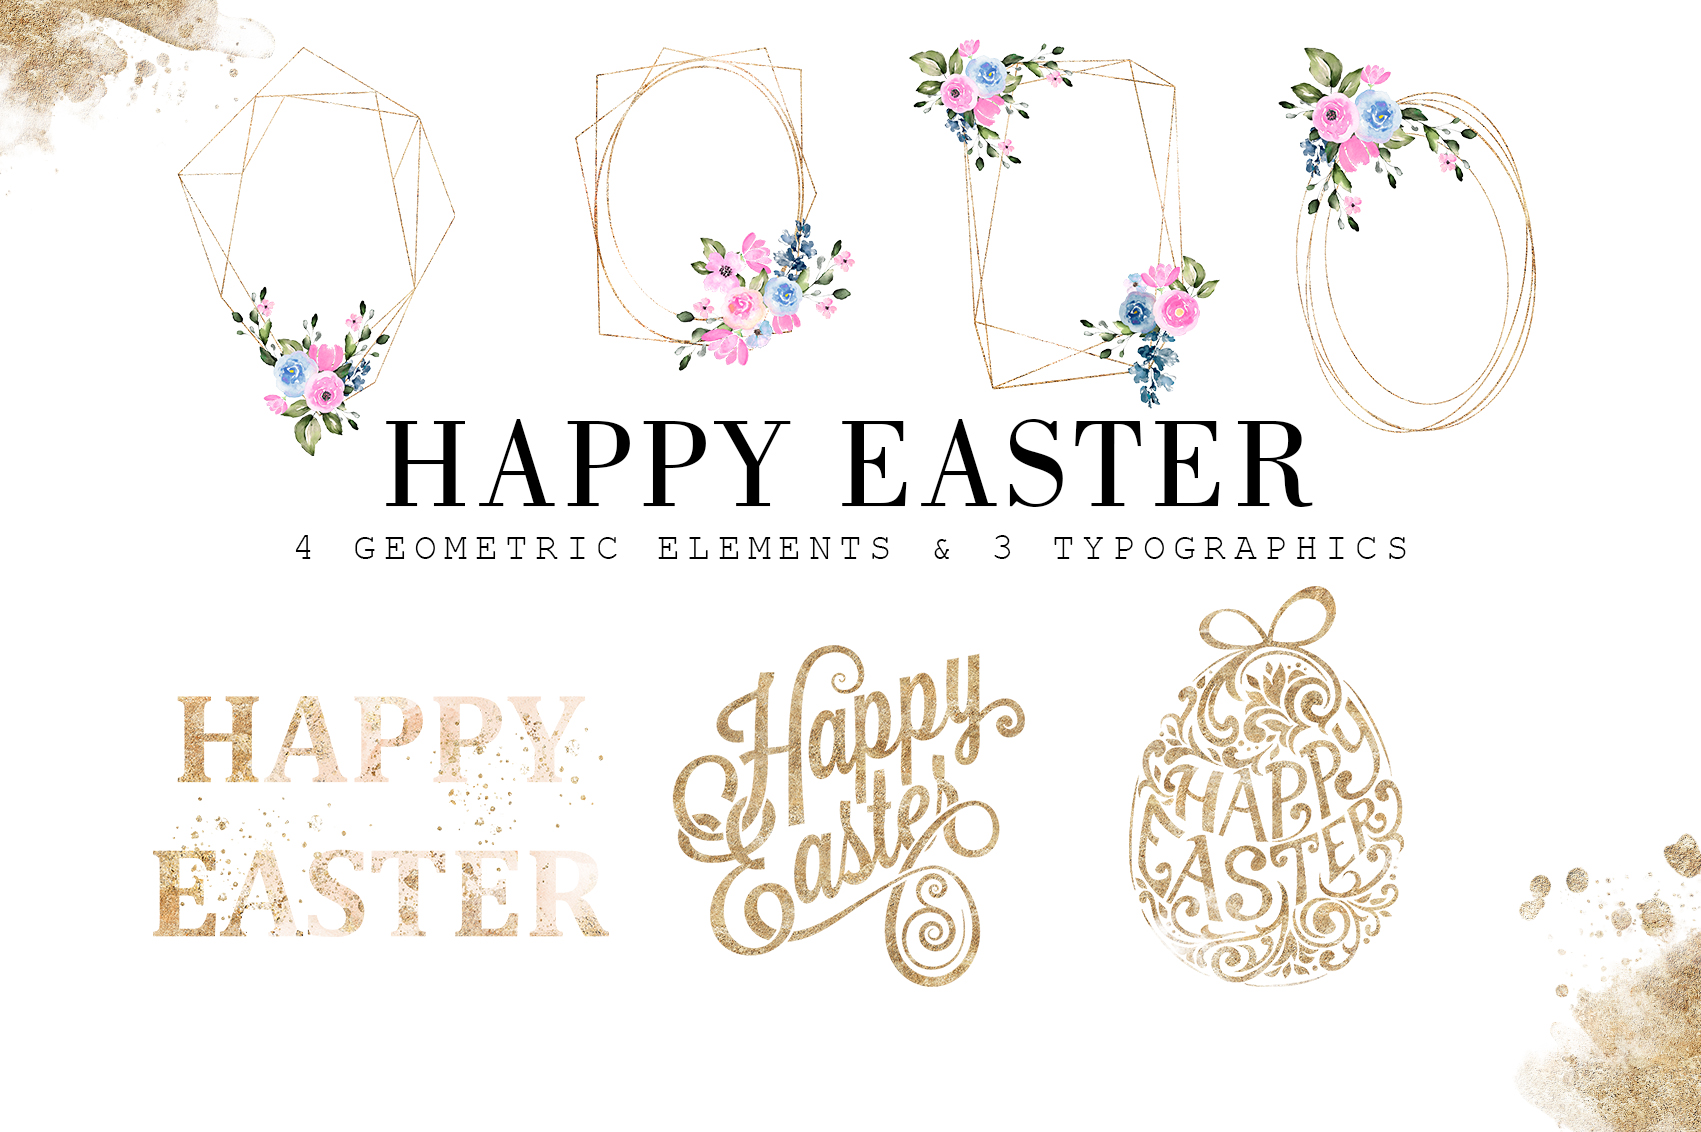 Happy Easter|Watercolor Elements clipArt example image 3